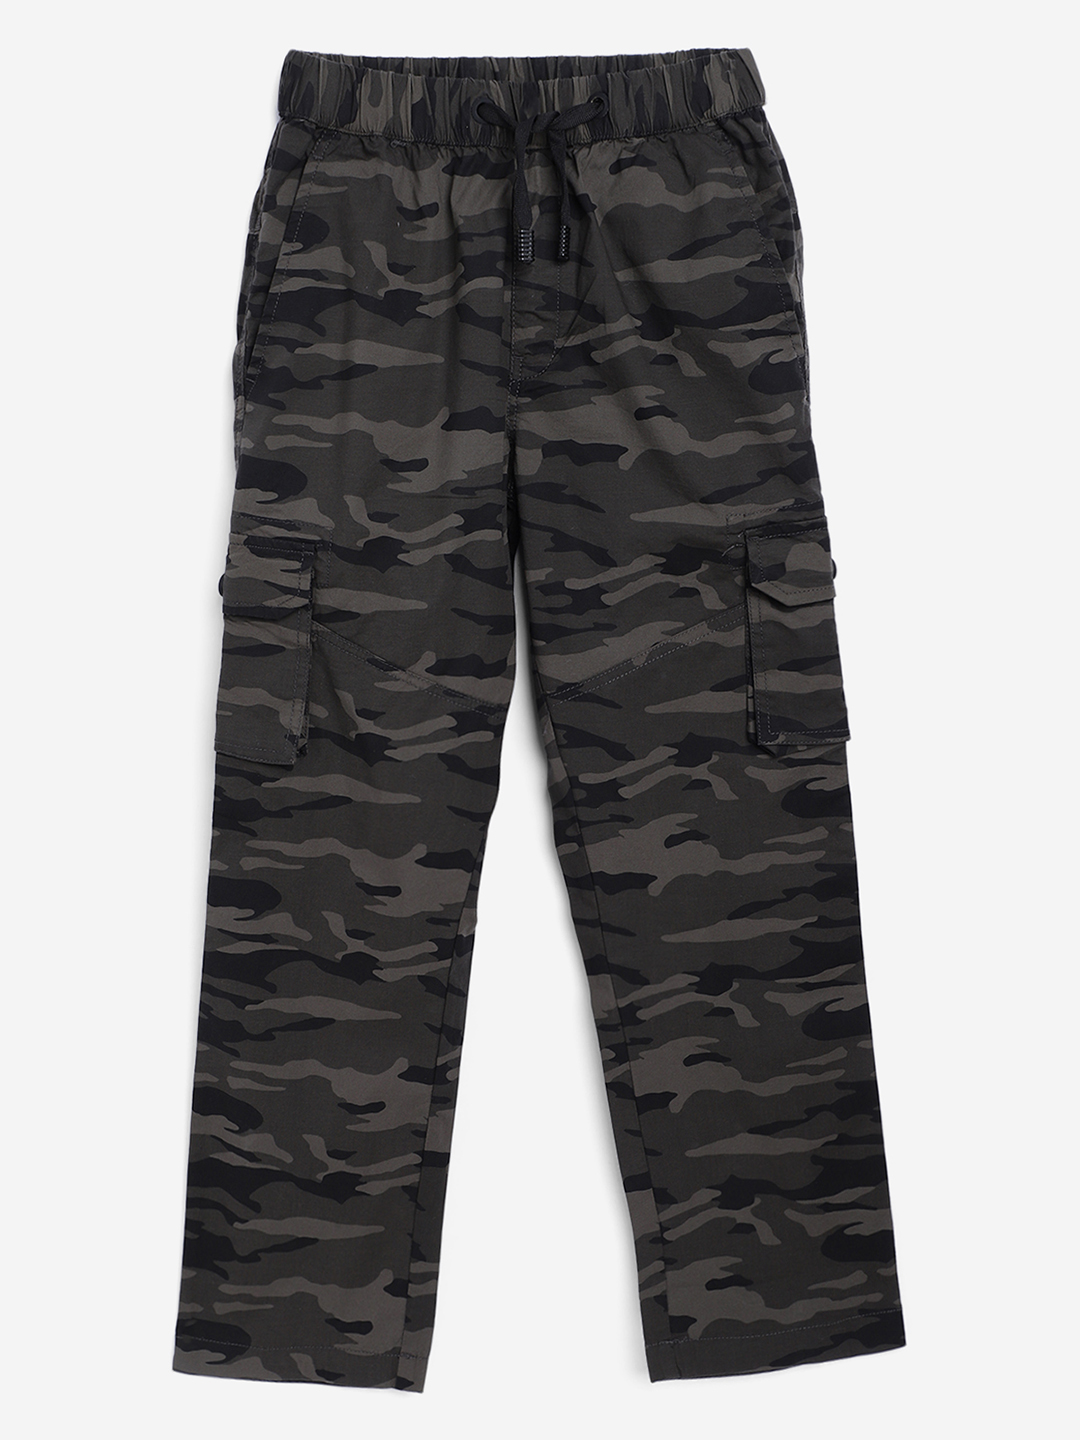 OCTAVE | Boys OLIVE Trackpants